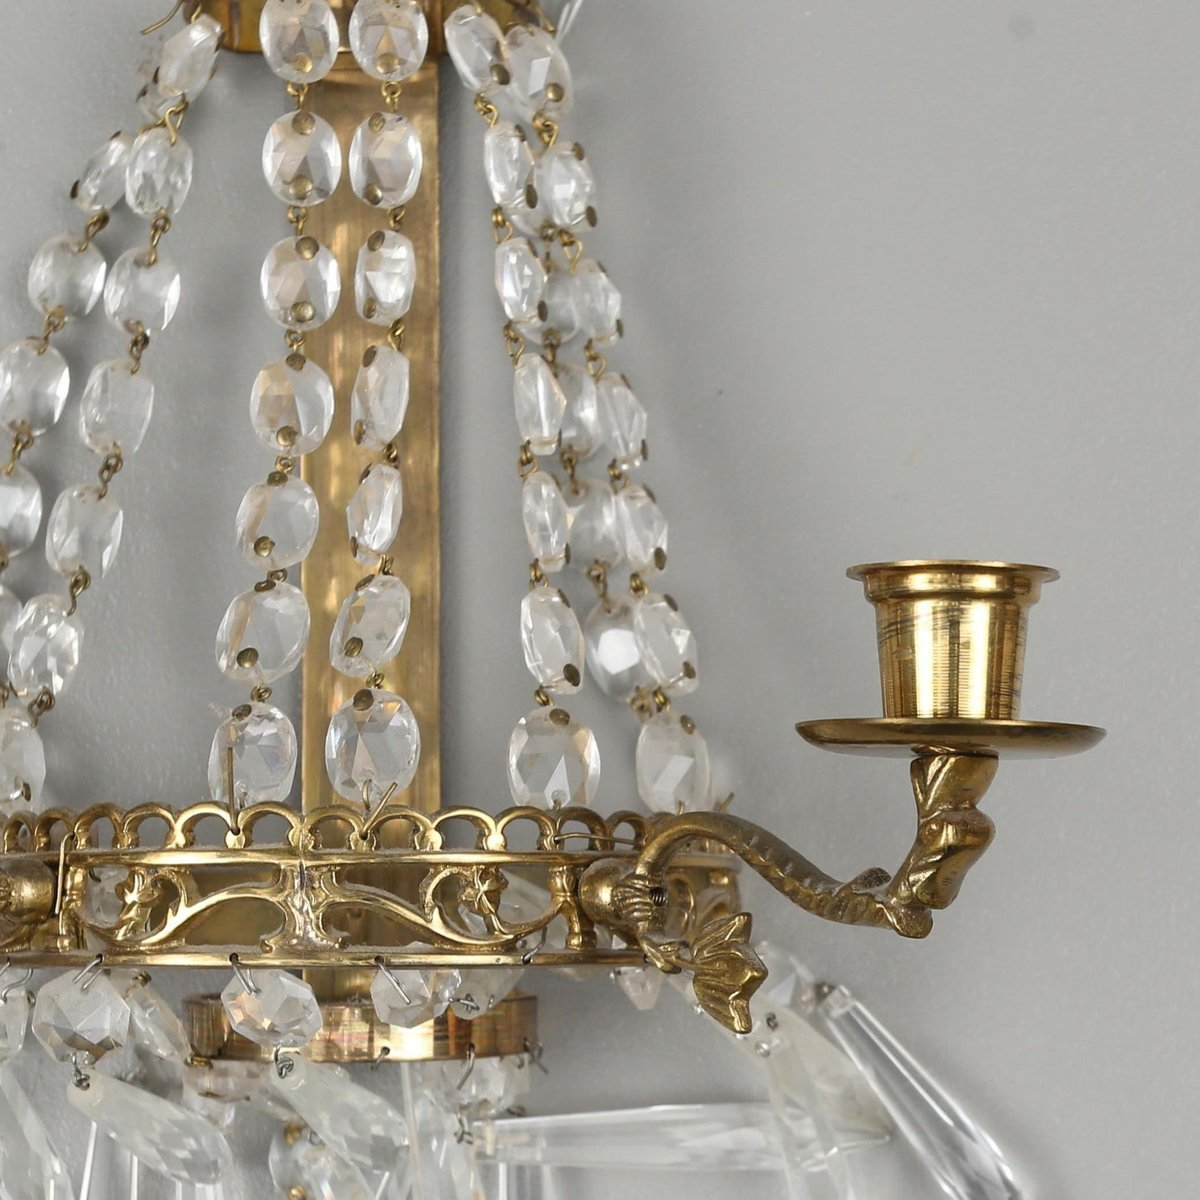 Antique Crystal Wall Mounting Candle Holders Set Of 2